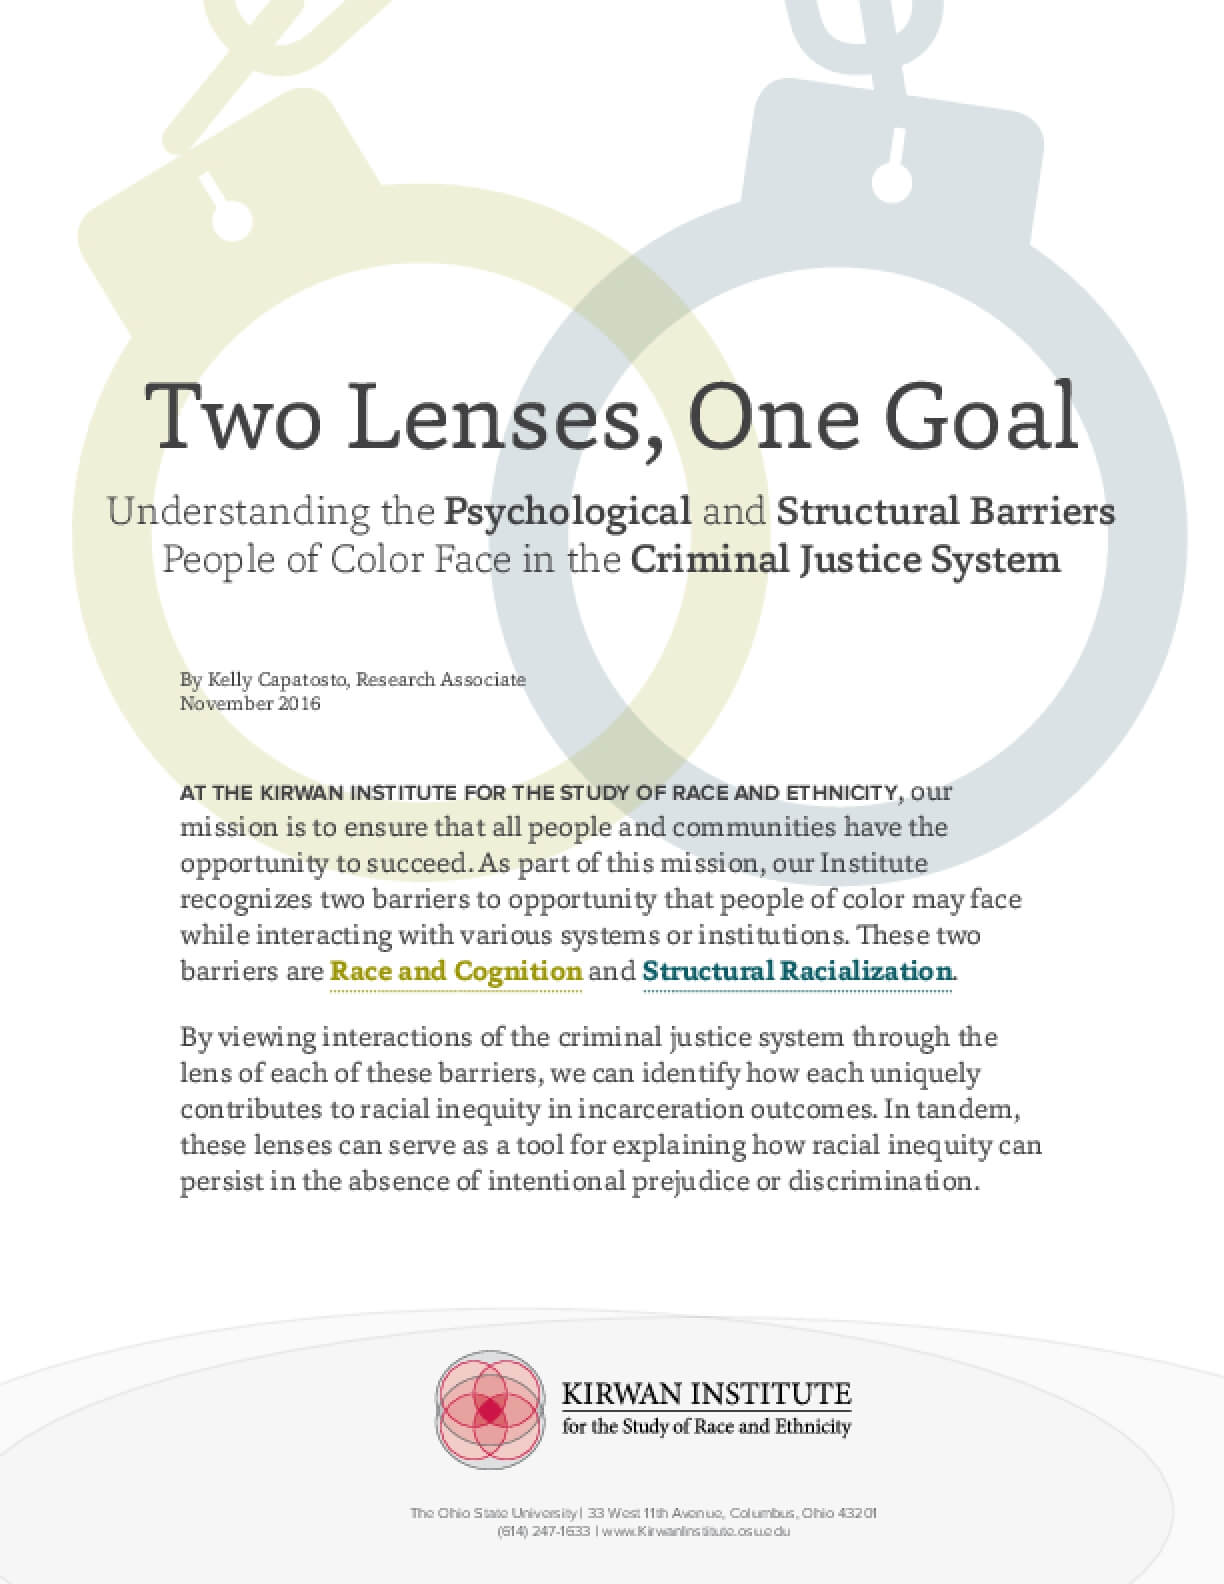 Understanding the Psychological and Structural Barriers People of Color Face in the Criminal Justice System